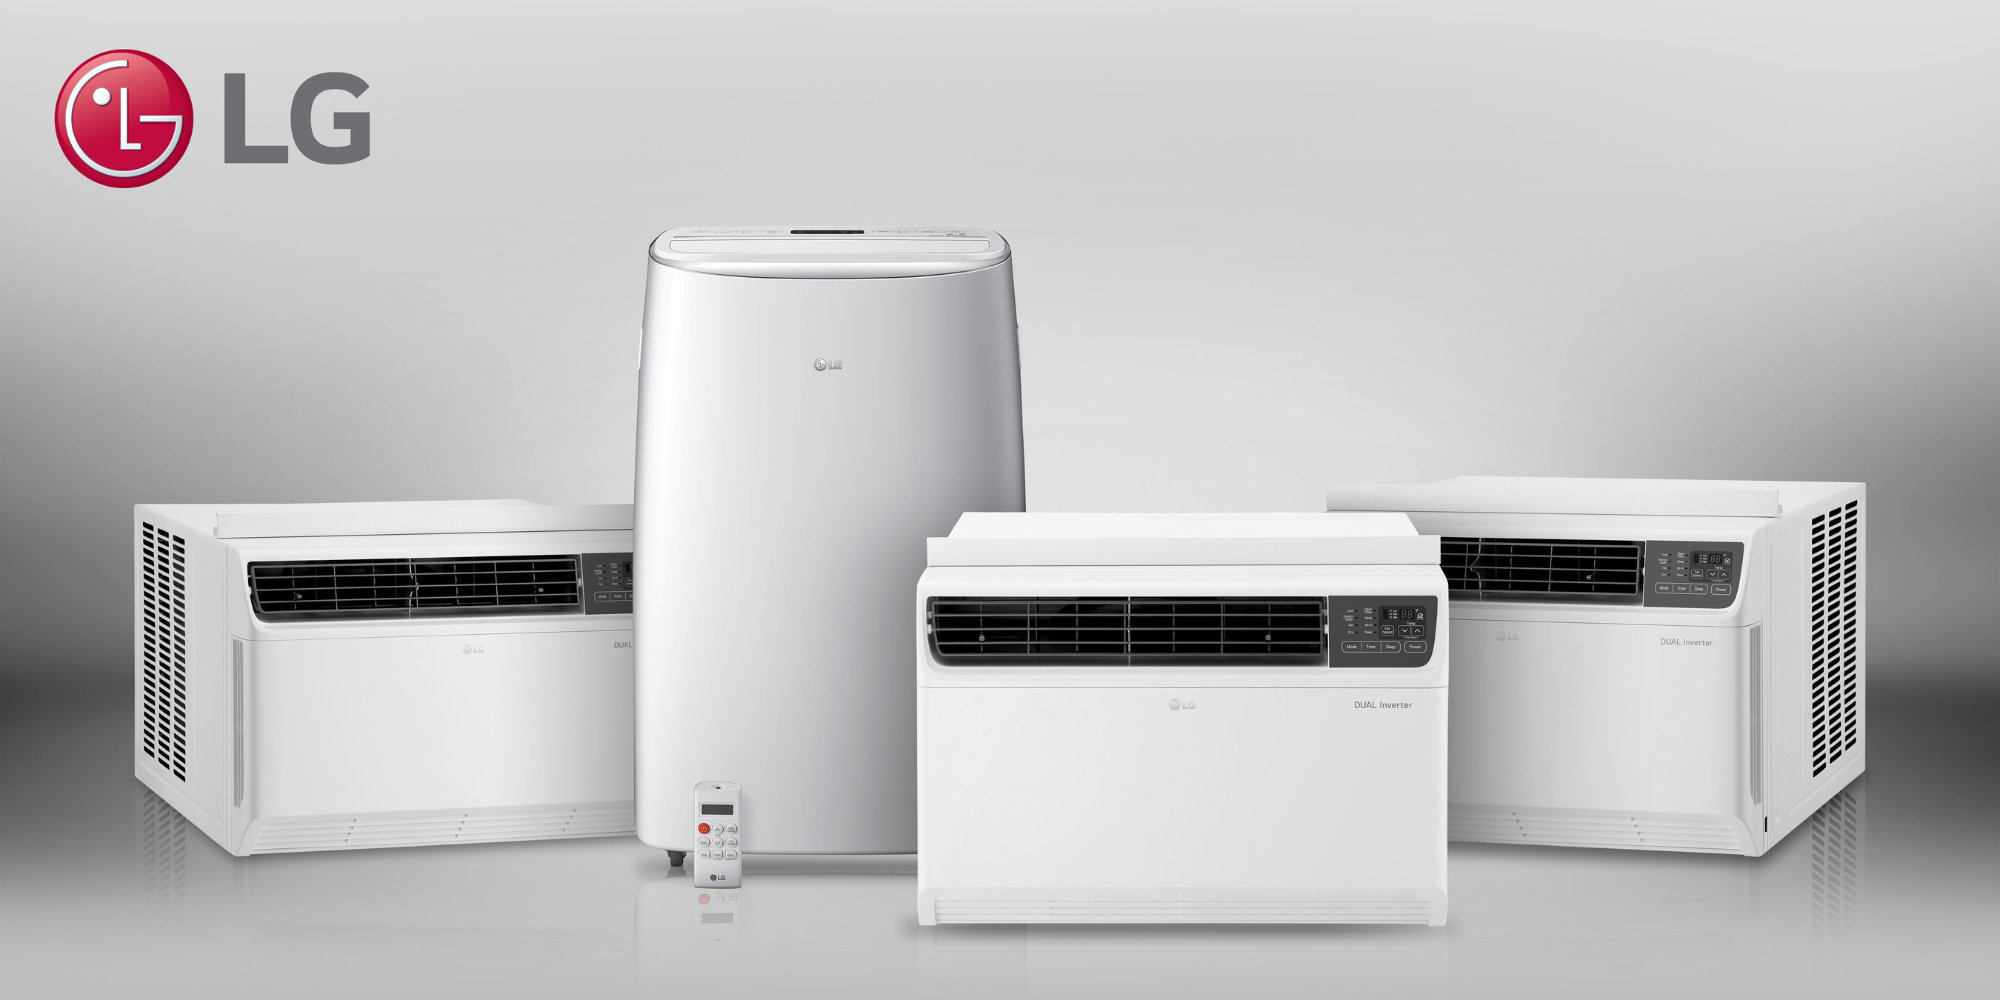 LG's new Smart Air Conditioner is energy efficient, portable and works w/ Alexa + Google Assistant